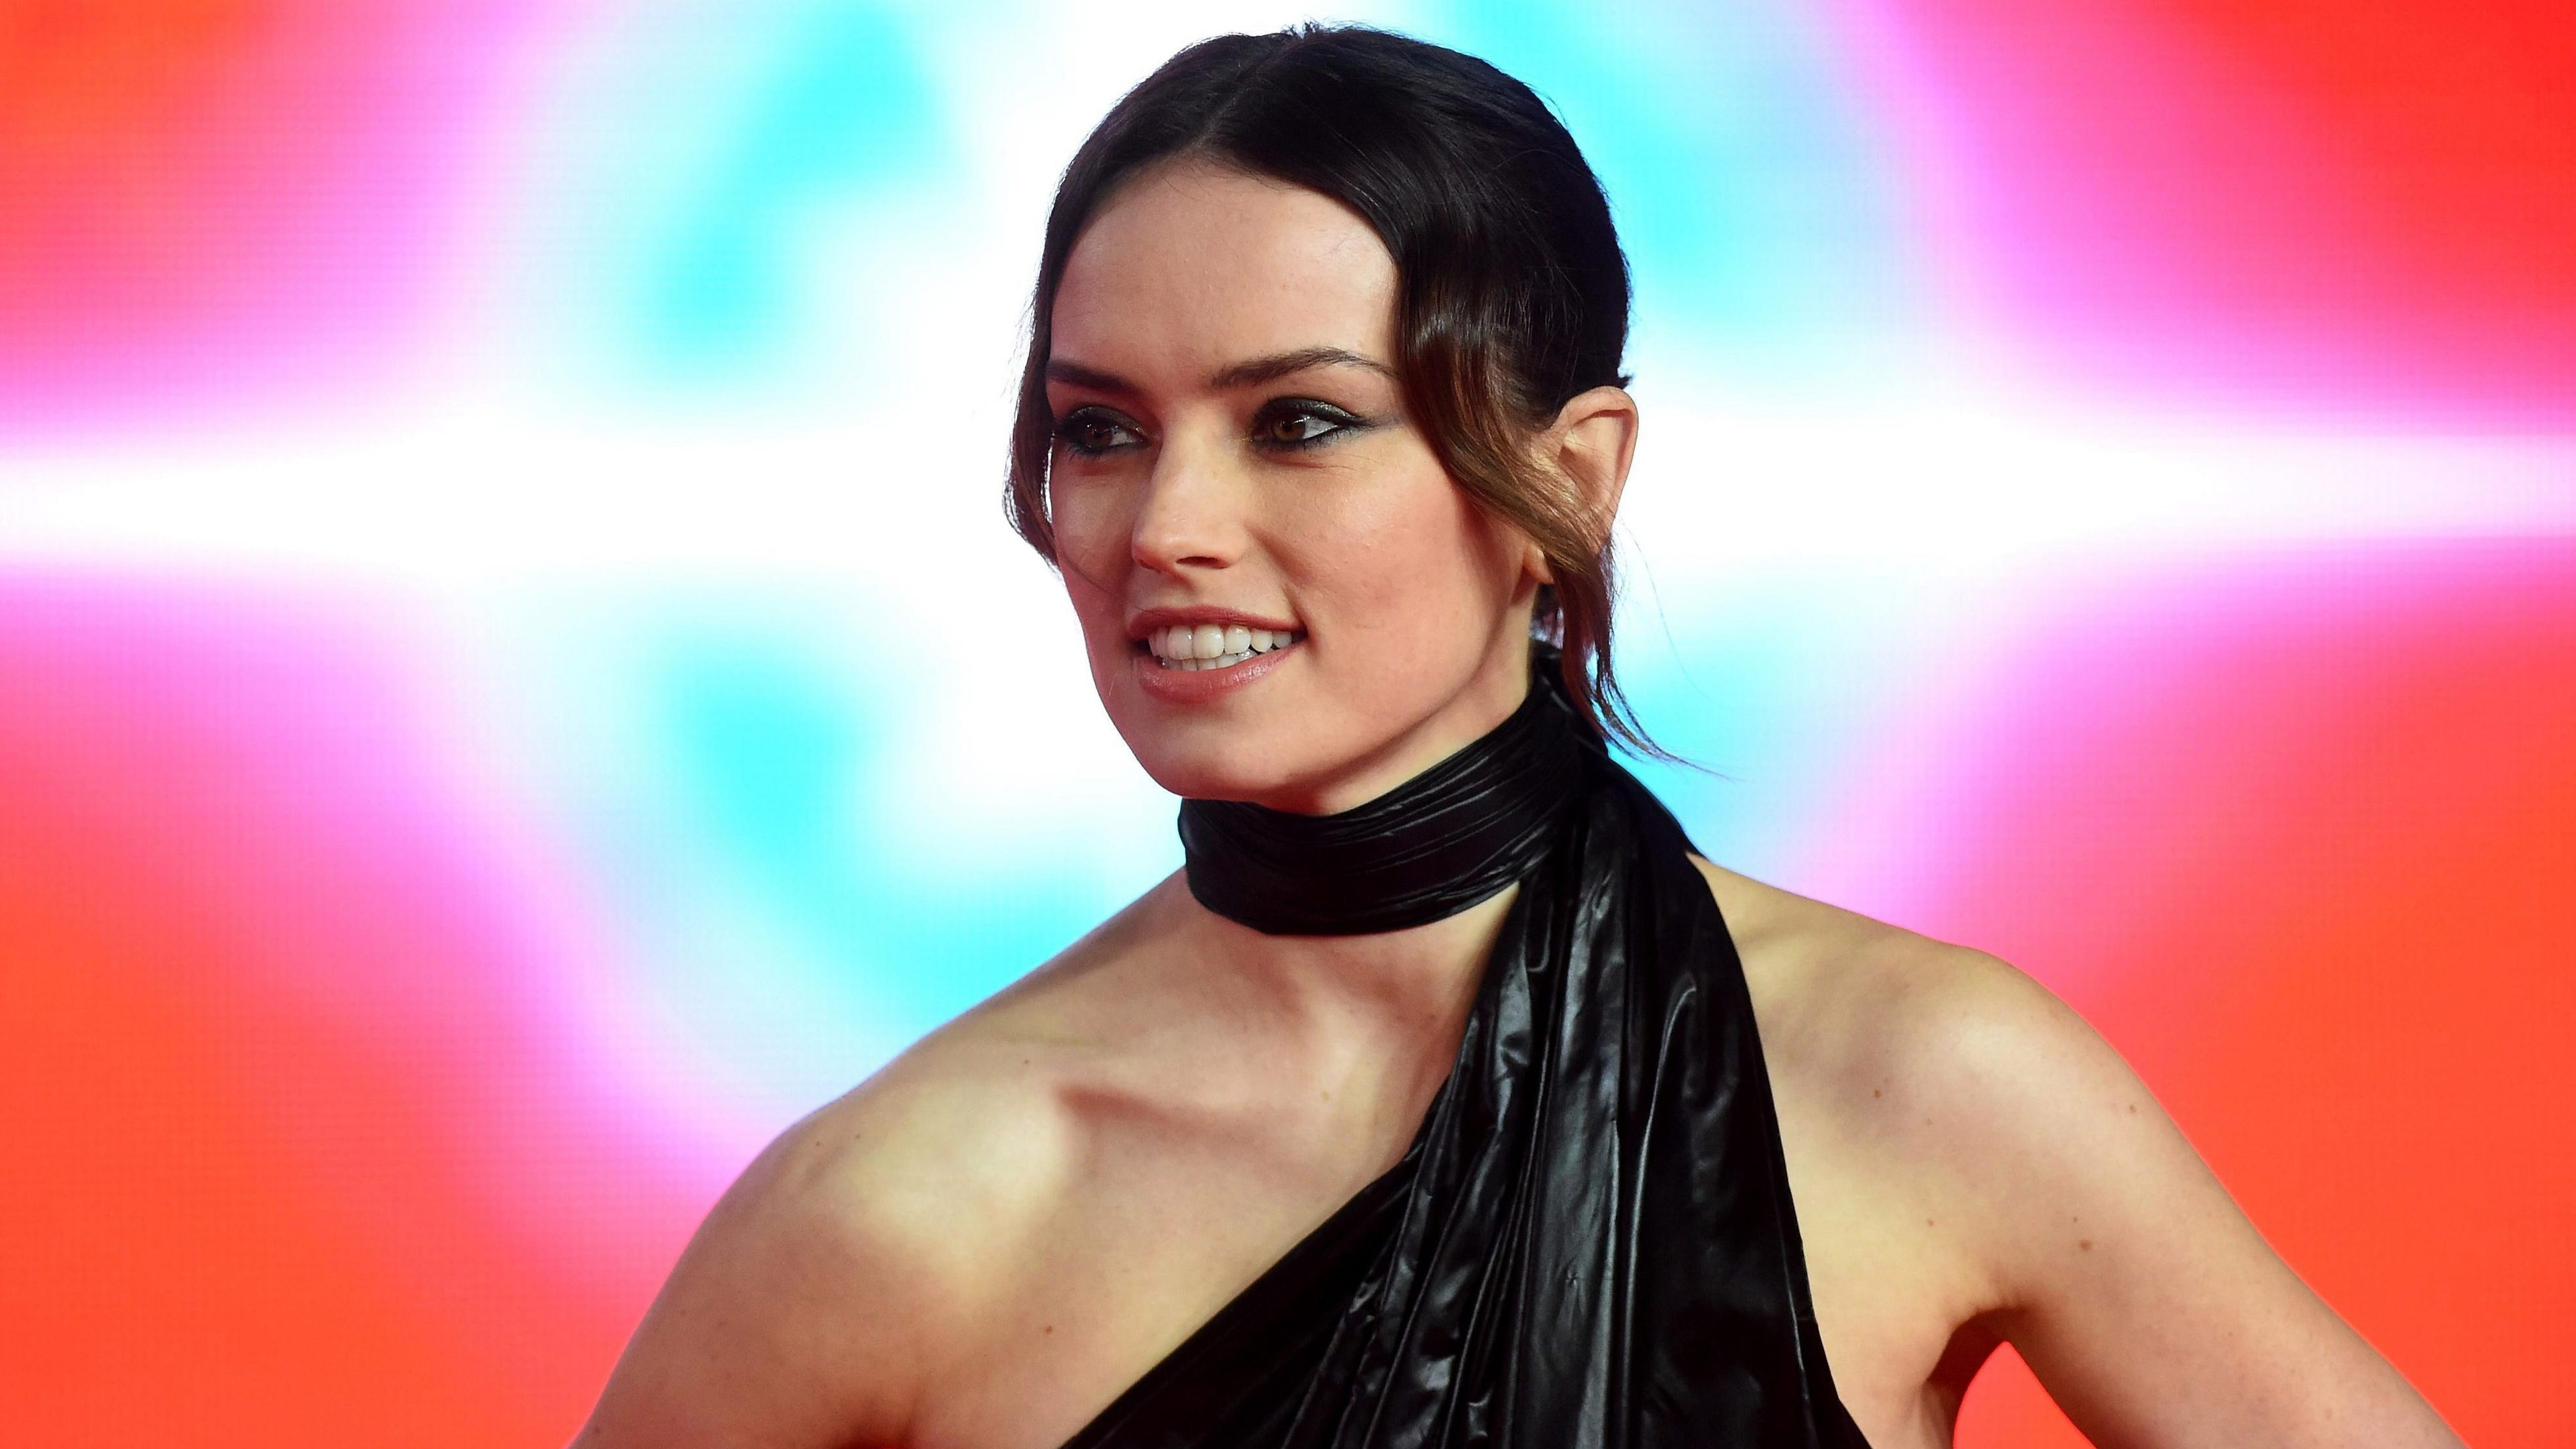 Wallpaper 4k Daisy Ridley In 2019 4k 4k wallpapers celebrities 3840x2160